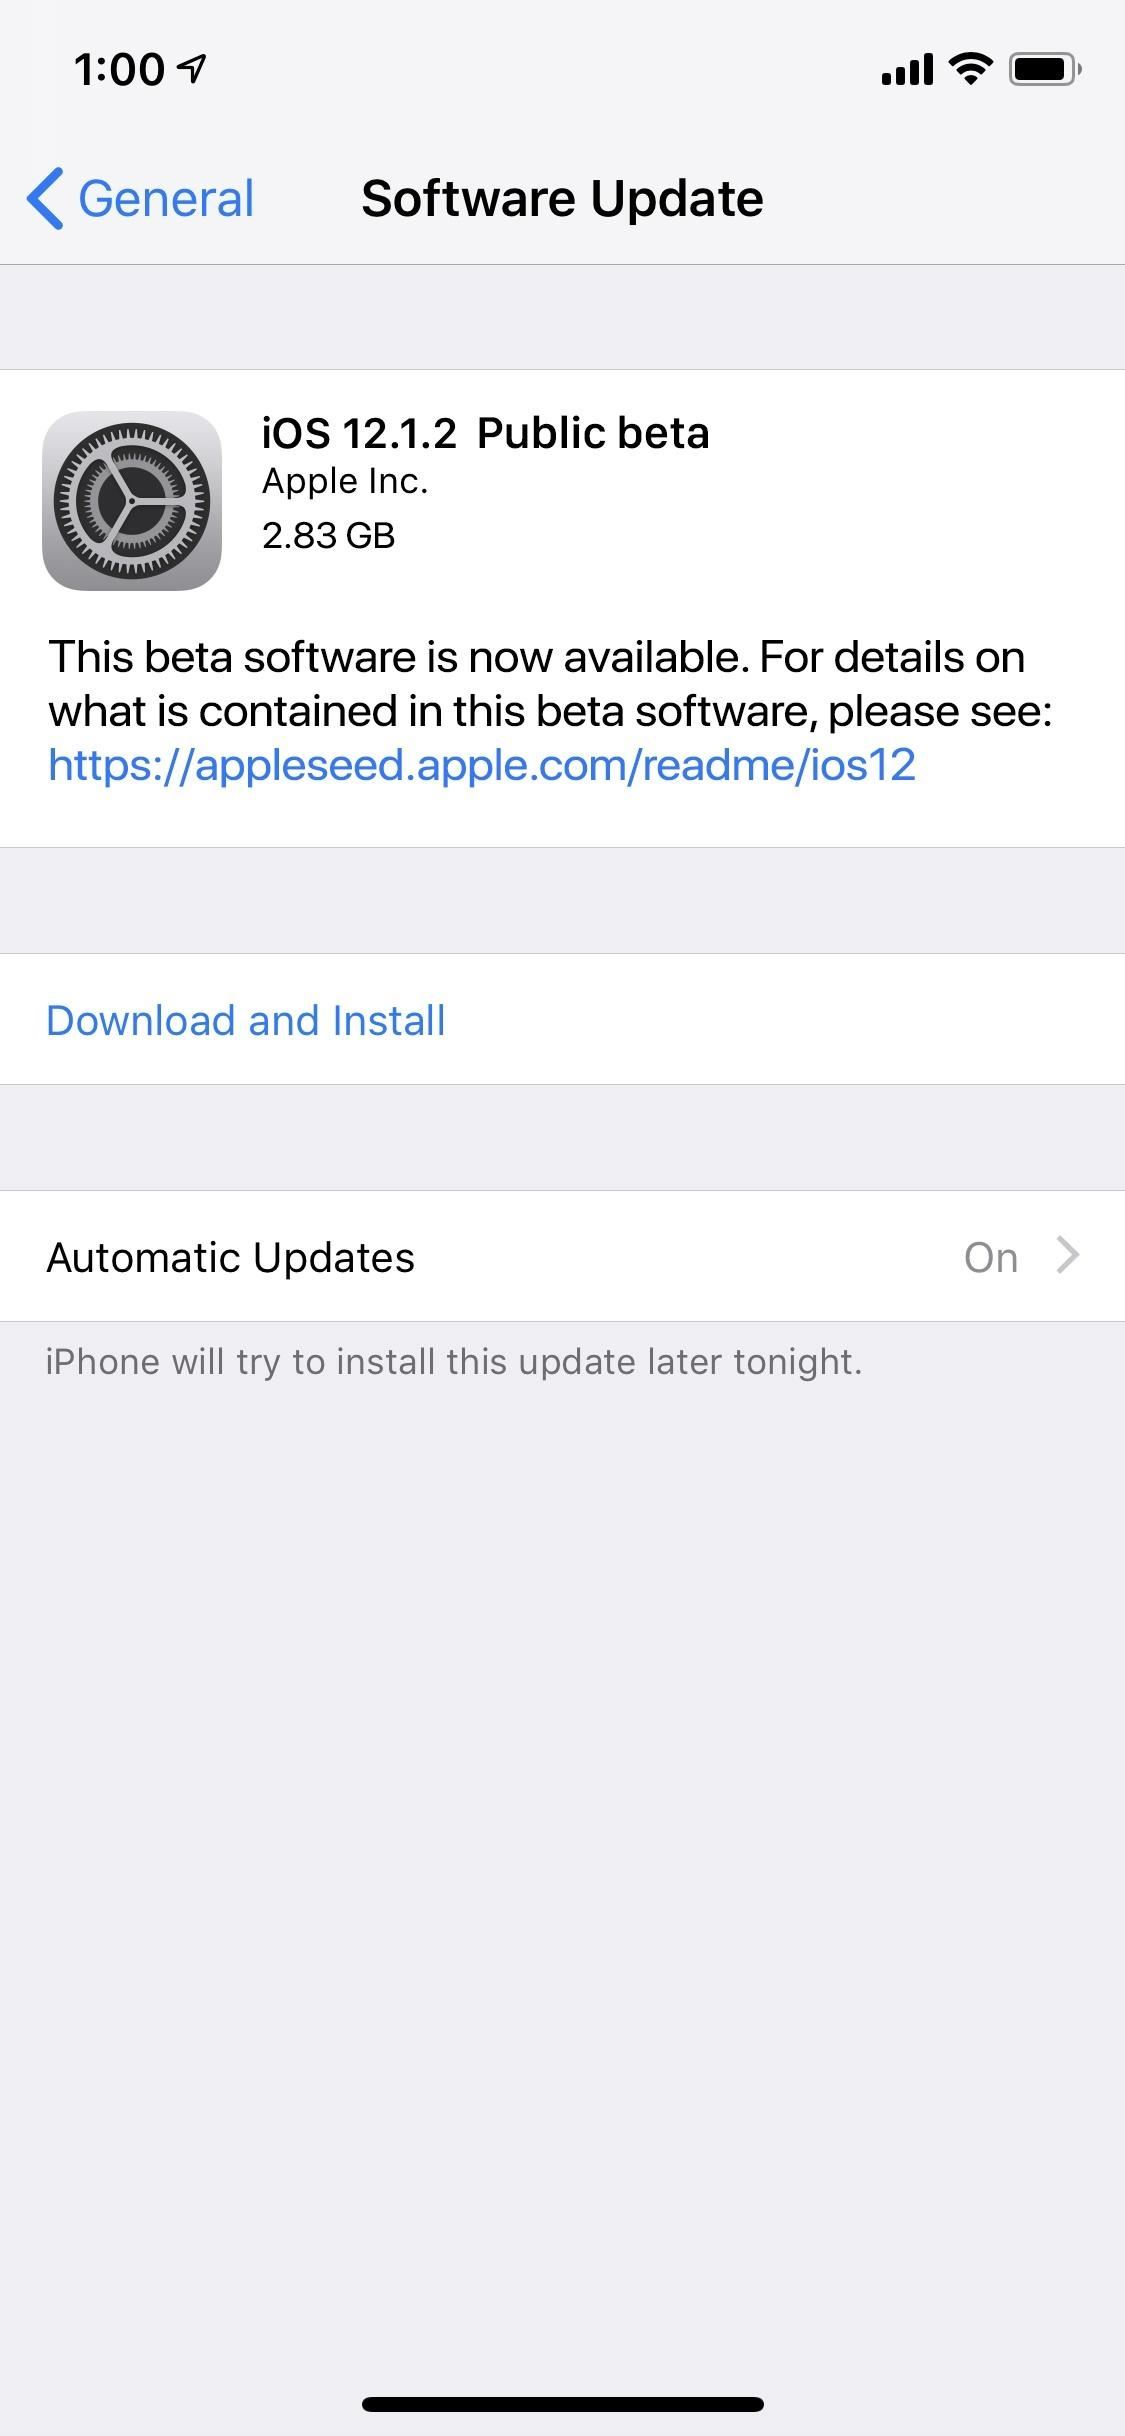 Apple has just released iOS 12.1.2 Public Beta 1 for iPhone